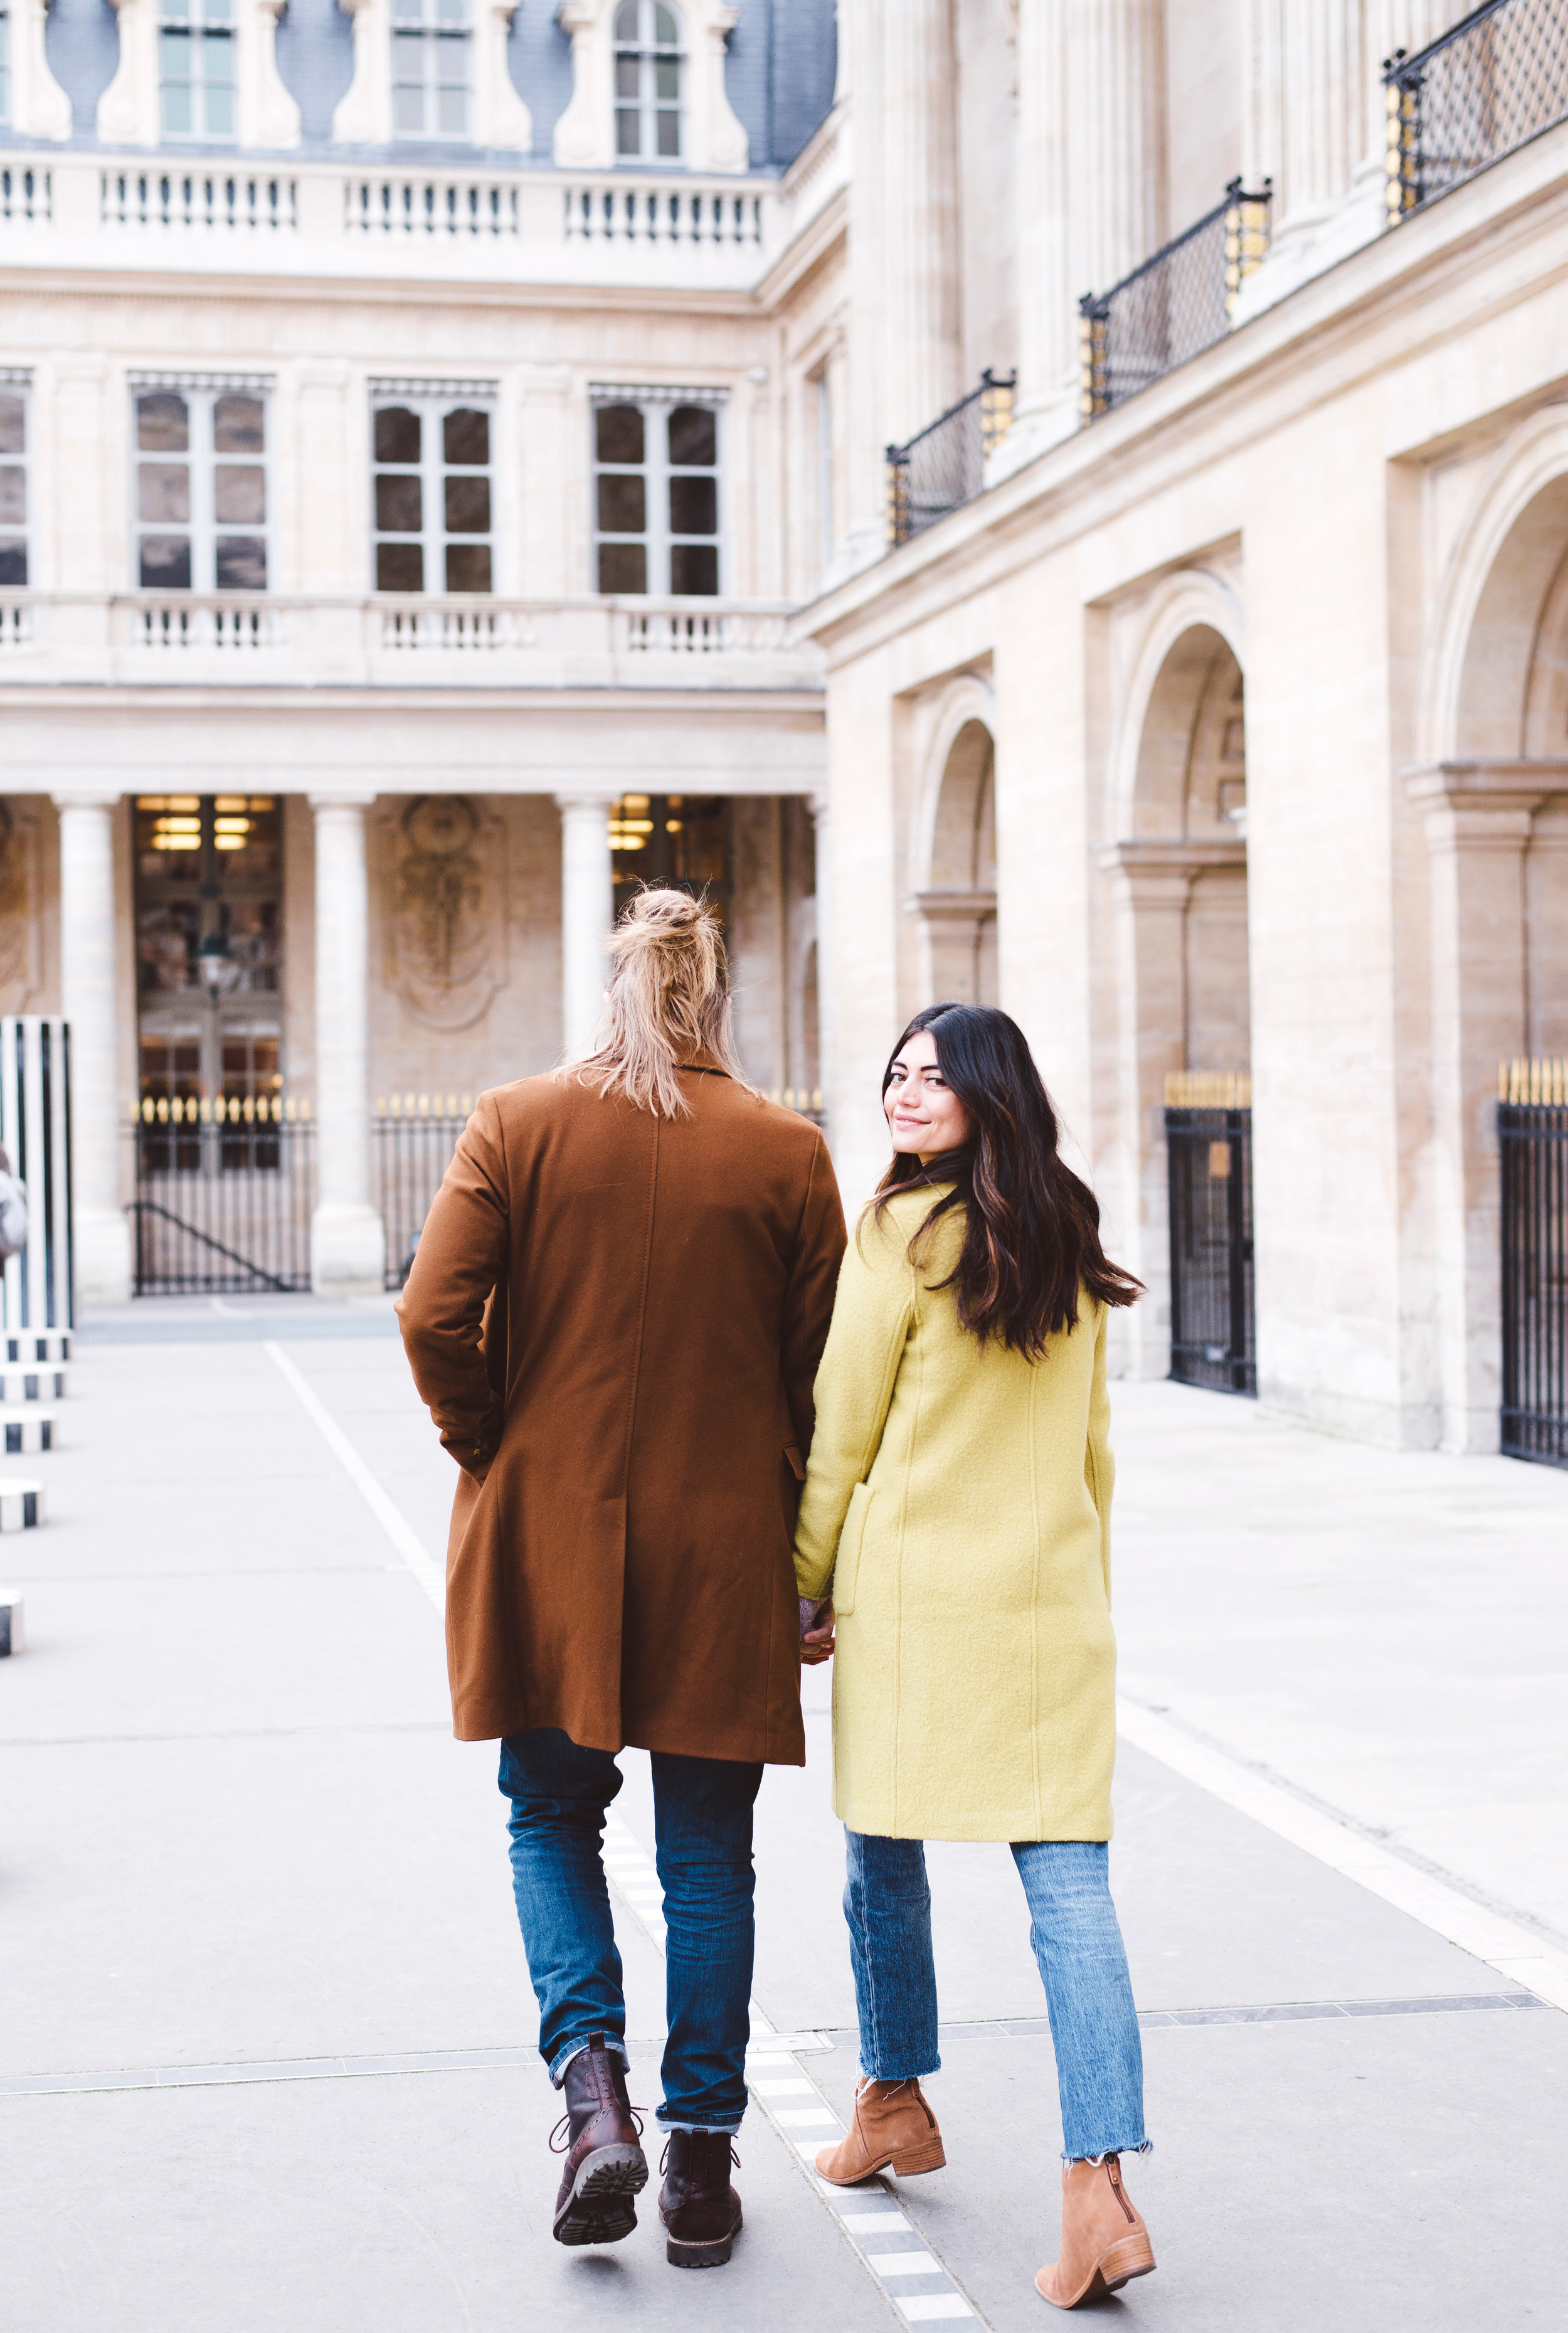 Couple-portrait-session-Paris-Louvre-PalaisRoyal-Seine010.jpg